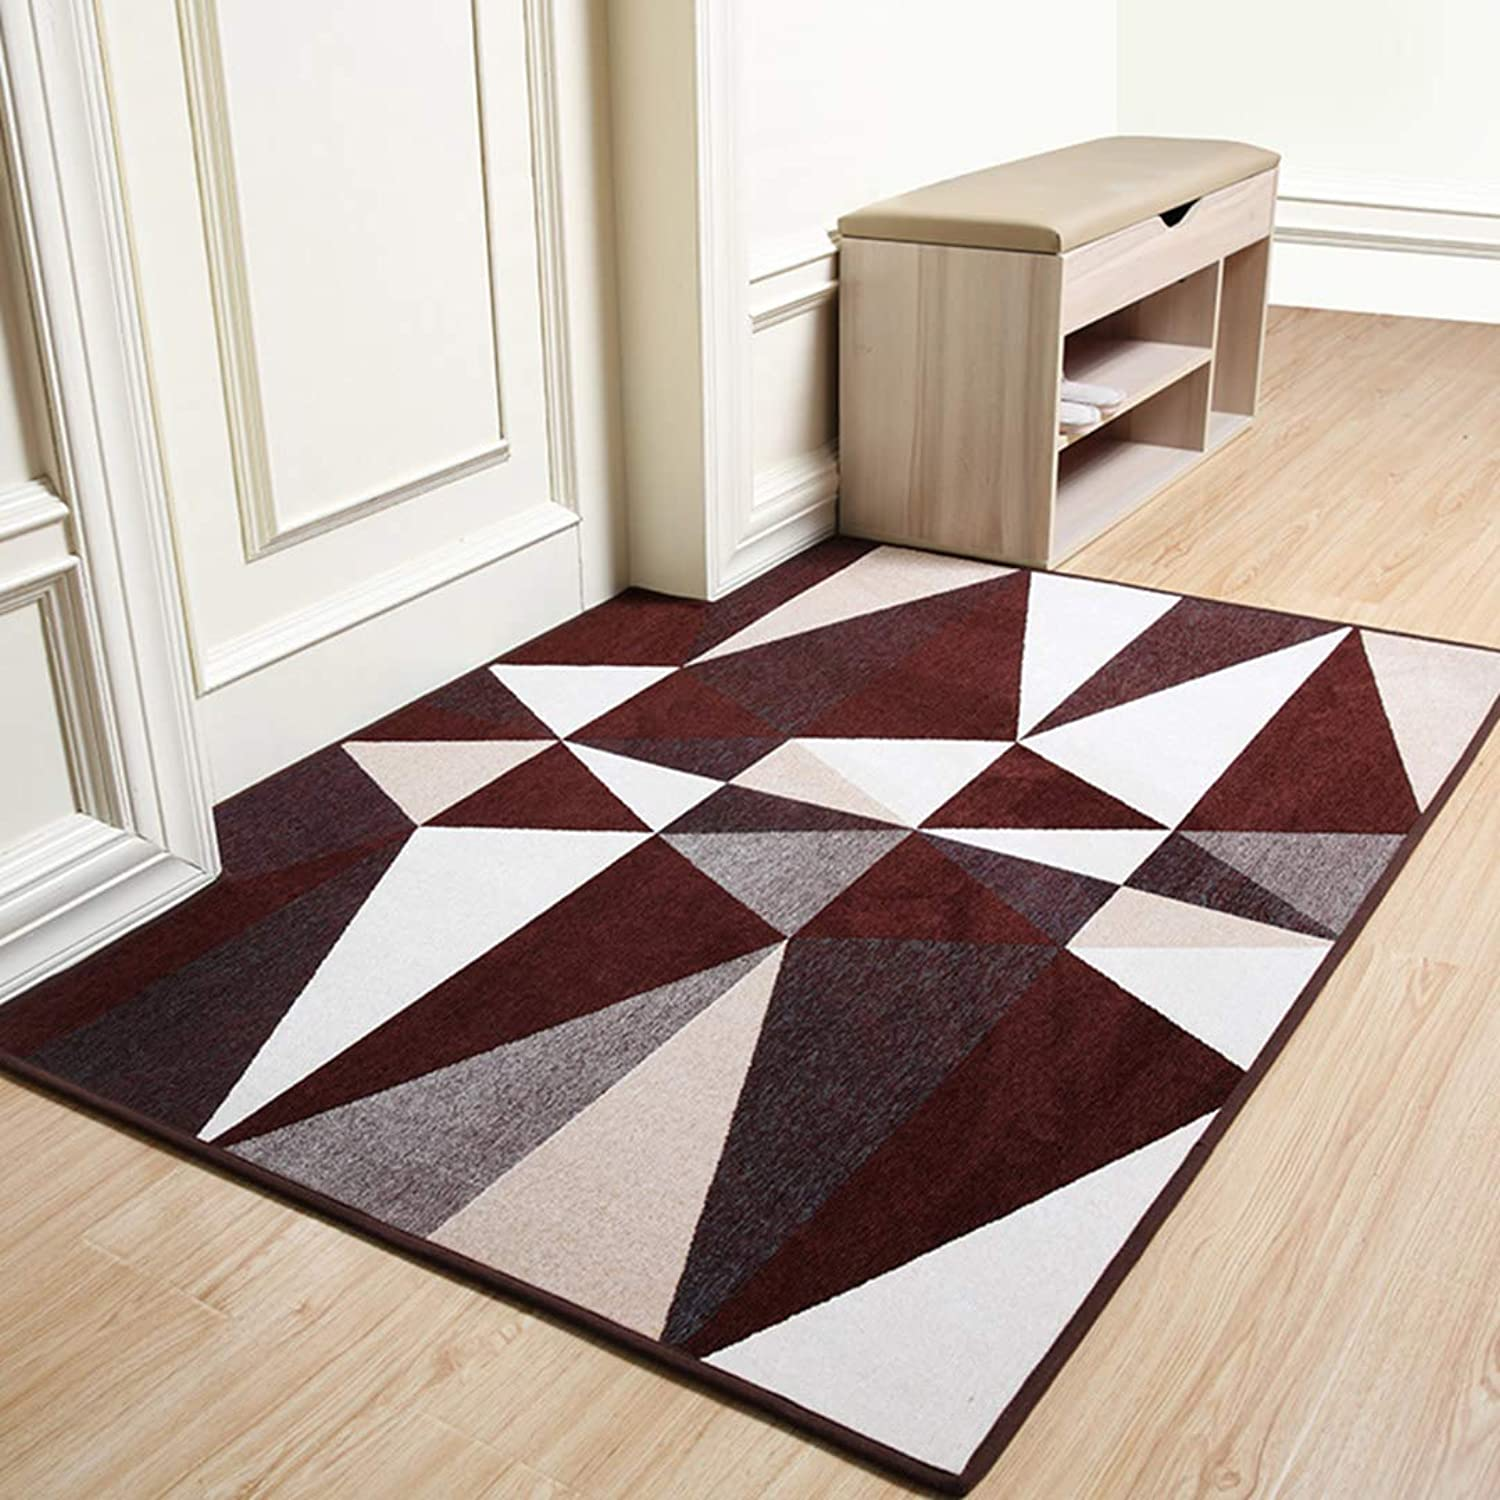 Door mat,Carpet Rug Geometric Pattern Non-Slip Bathroom Indoor Outdoor mats Front Door Rug-Coffee 50x80cm(20x31inch)